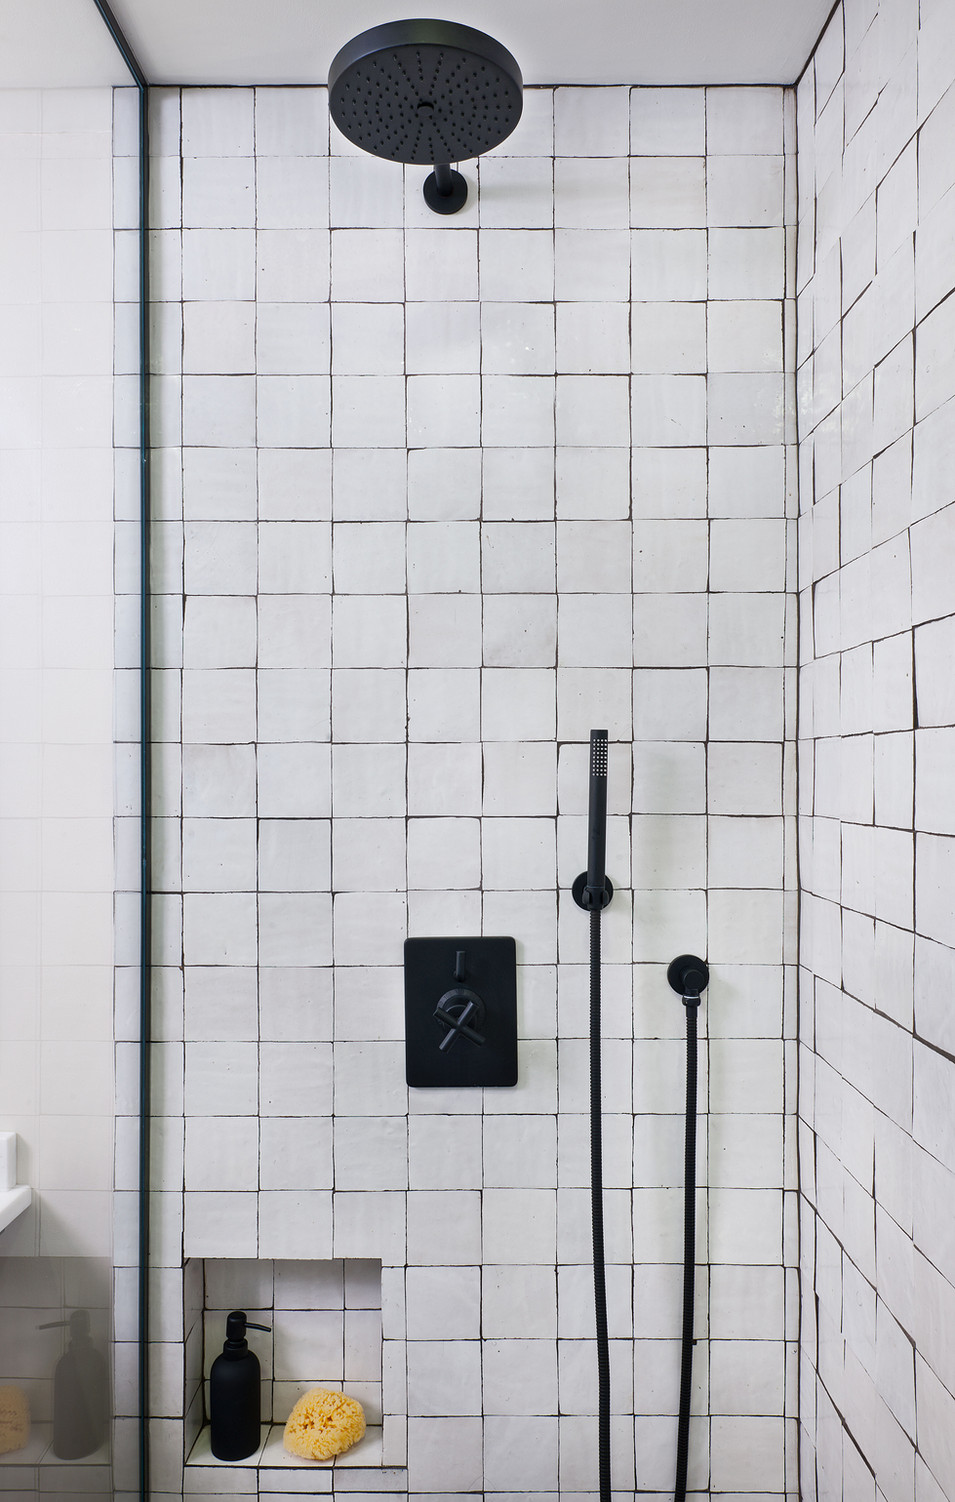 Kelly-Martin-Interiors-Cle-Tile-Bathroom-Zellige